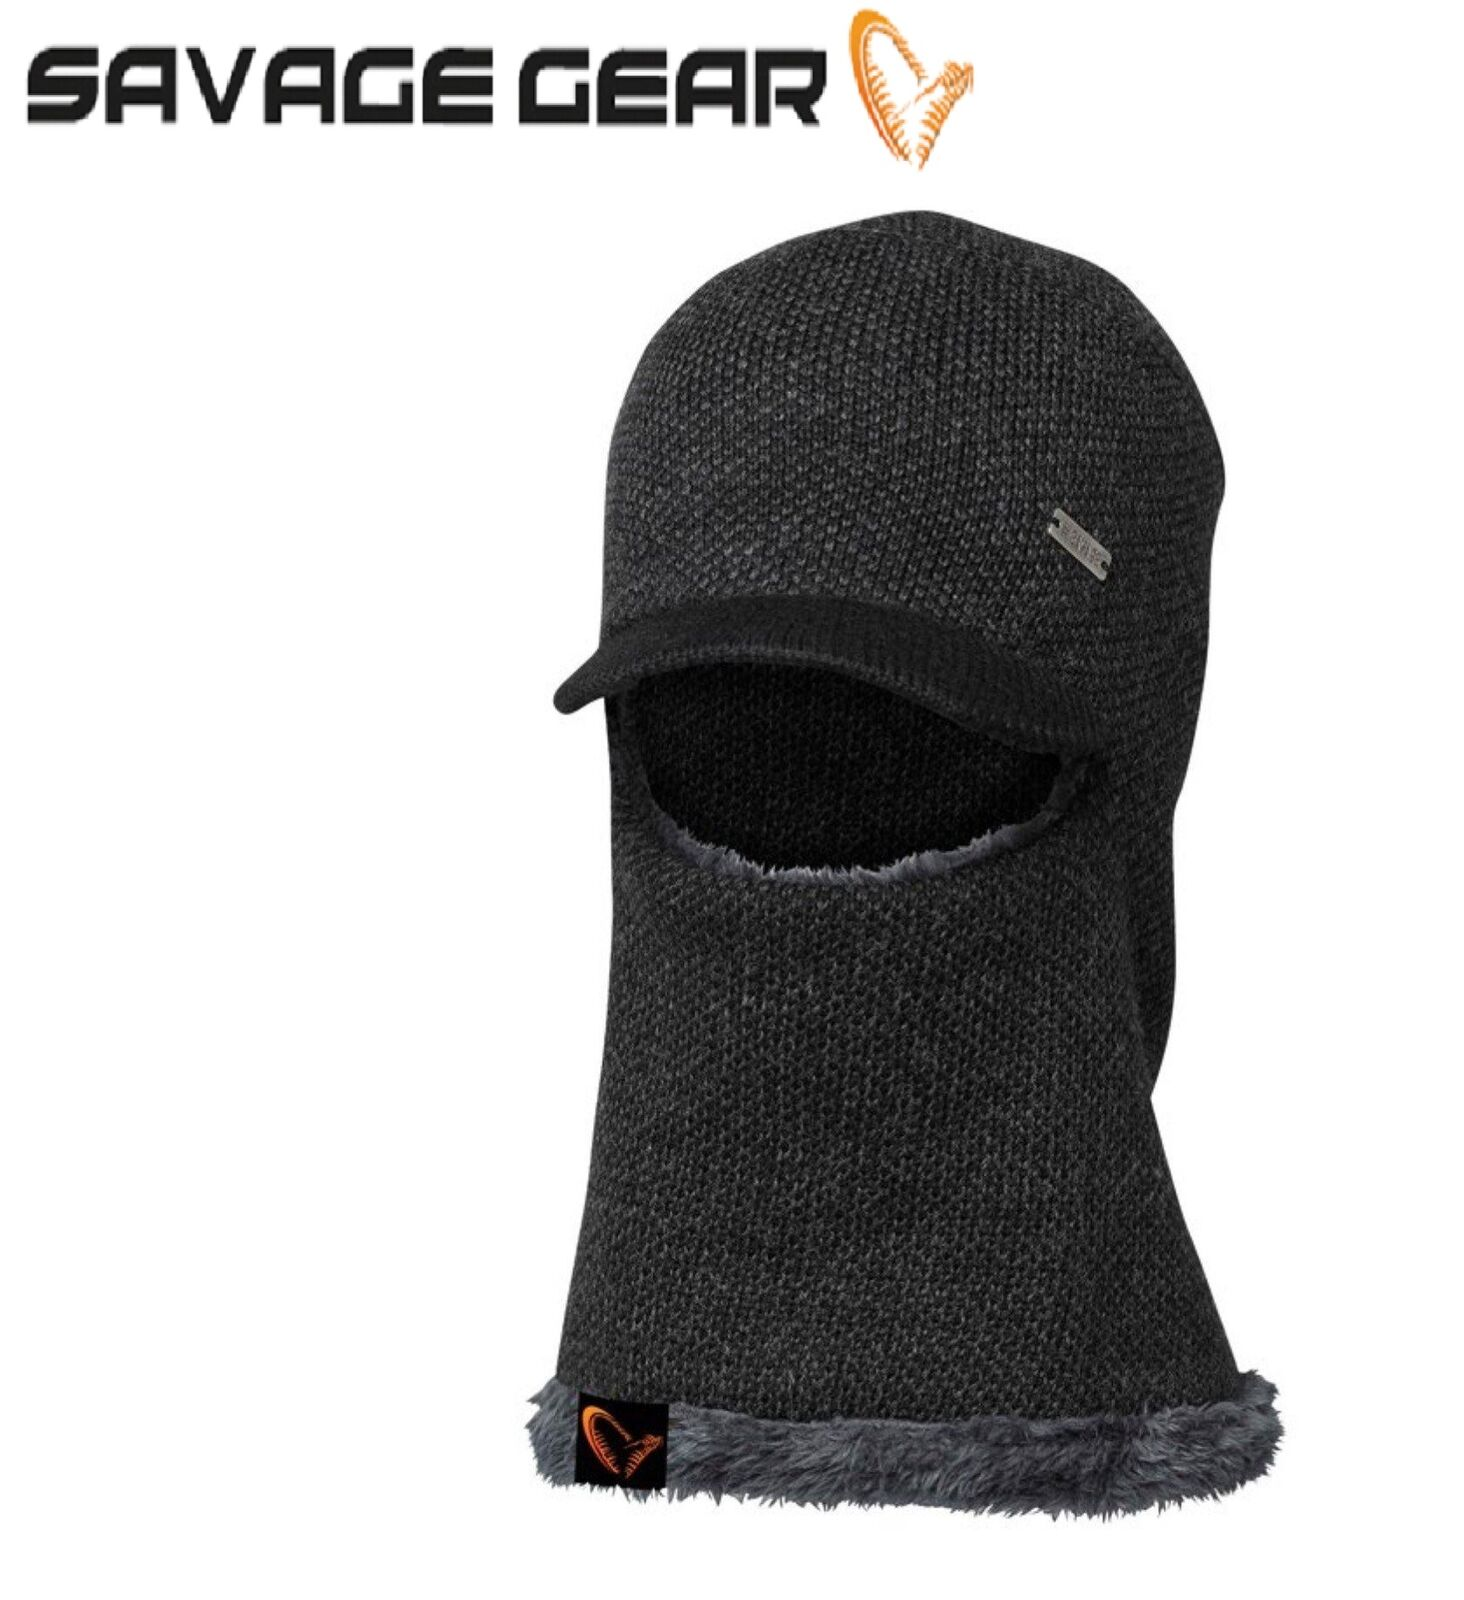 Savage Gear  SAVAGE Fleece Balaclava Winter Storm Fishing Skiing Outdoor Mask